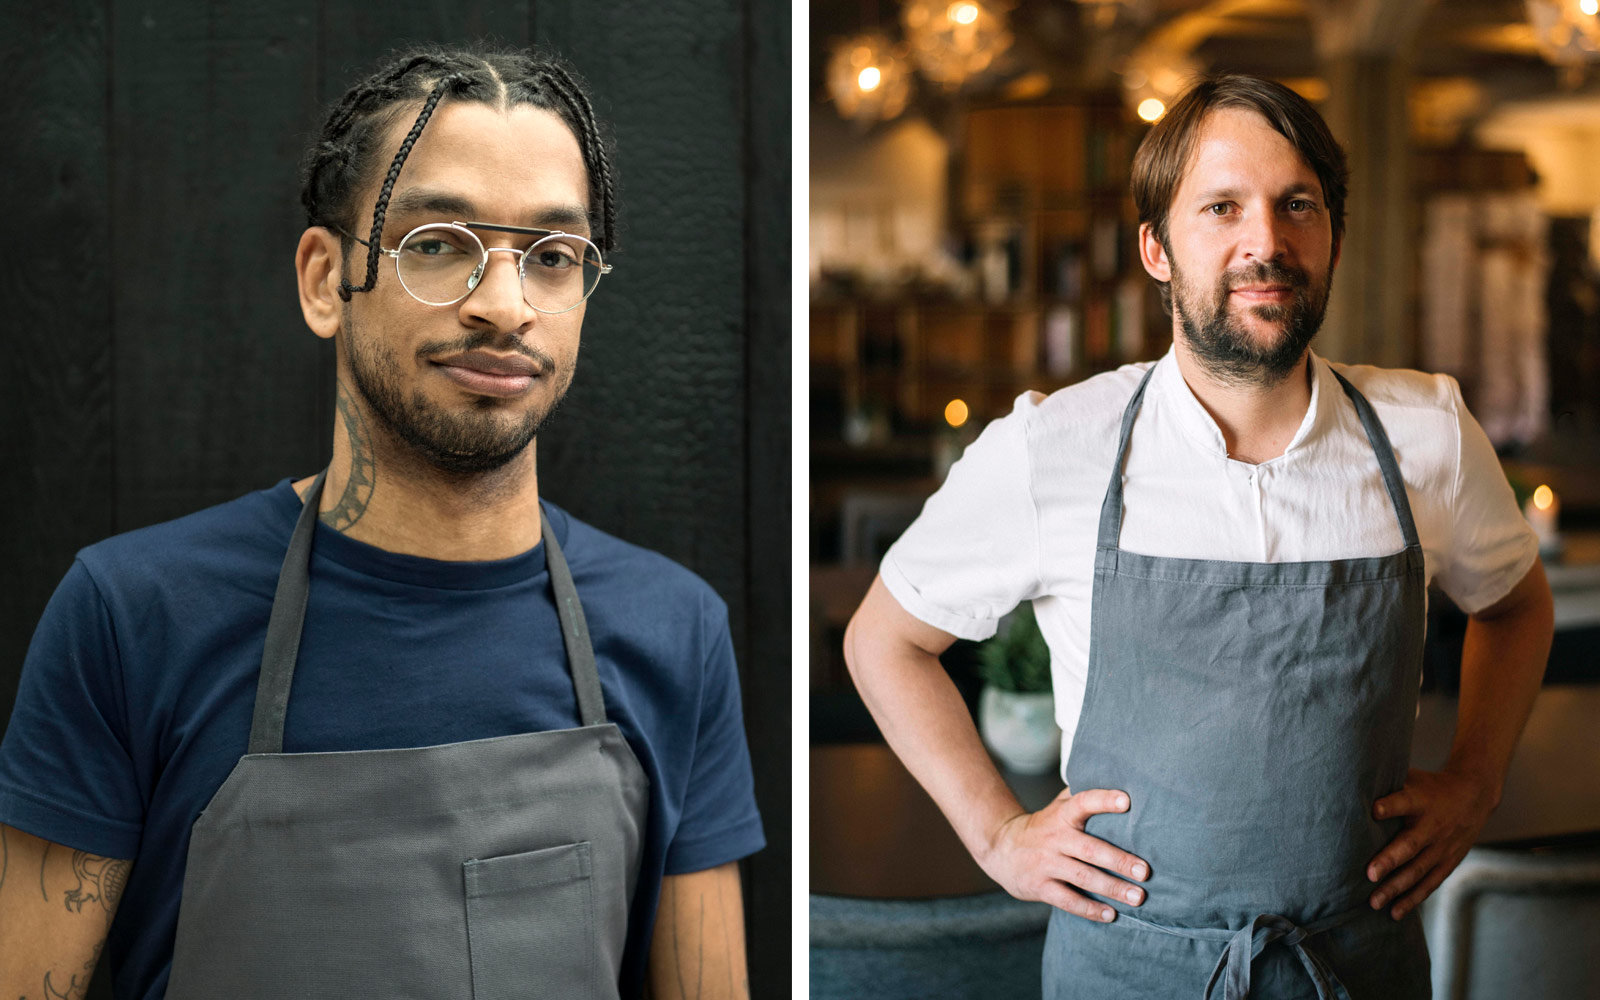 David Zilber and Rene Redzepi